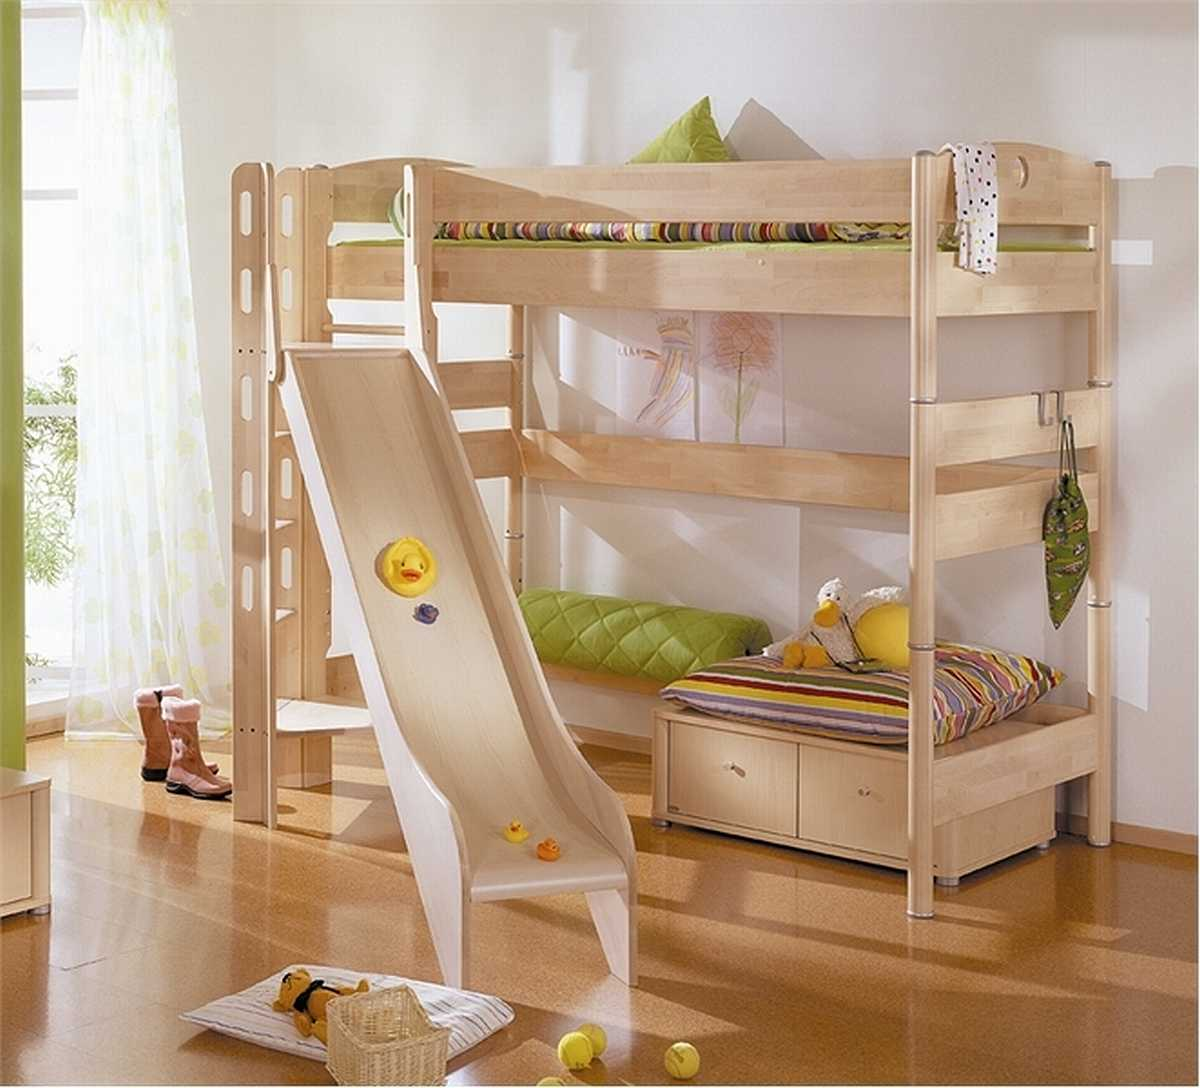 Maximize Space in Small Rooms with Trendy Trundle Beds for Kids